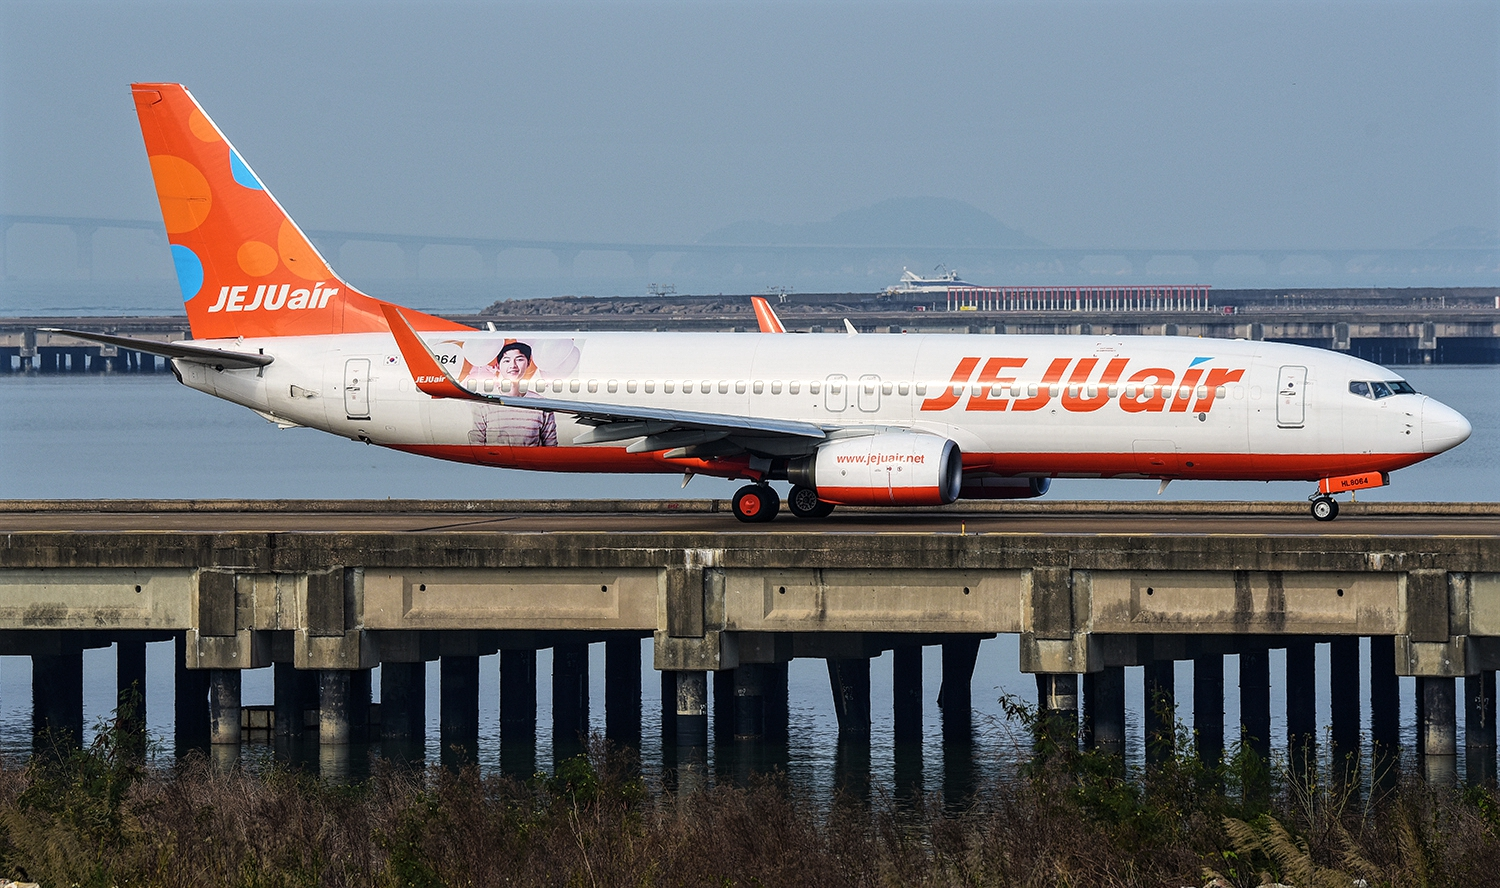 Boeing 737-800 of Jeju Air Orange-White Livery